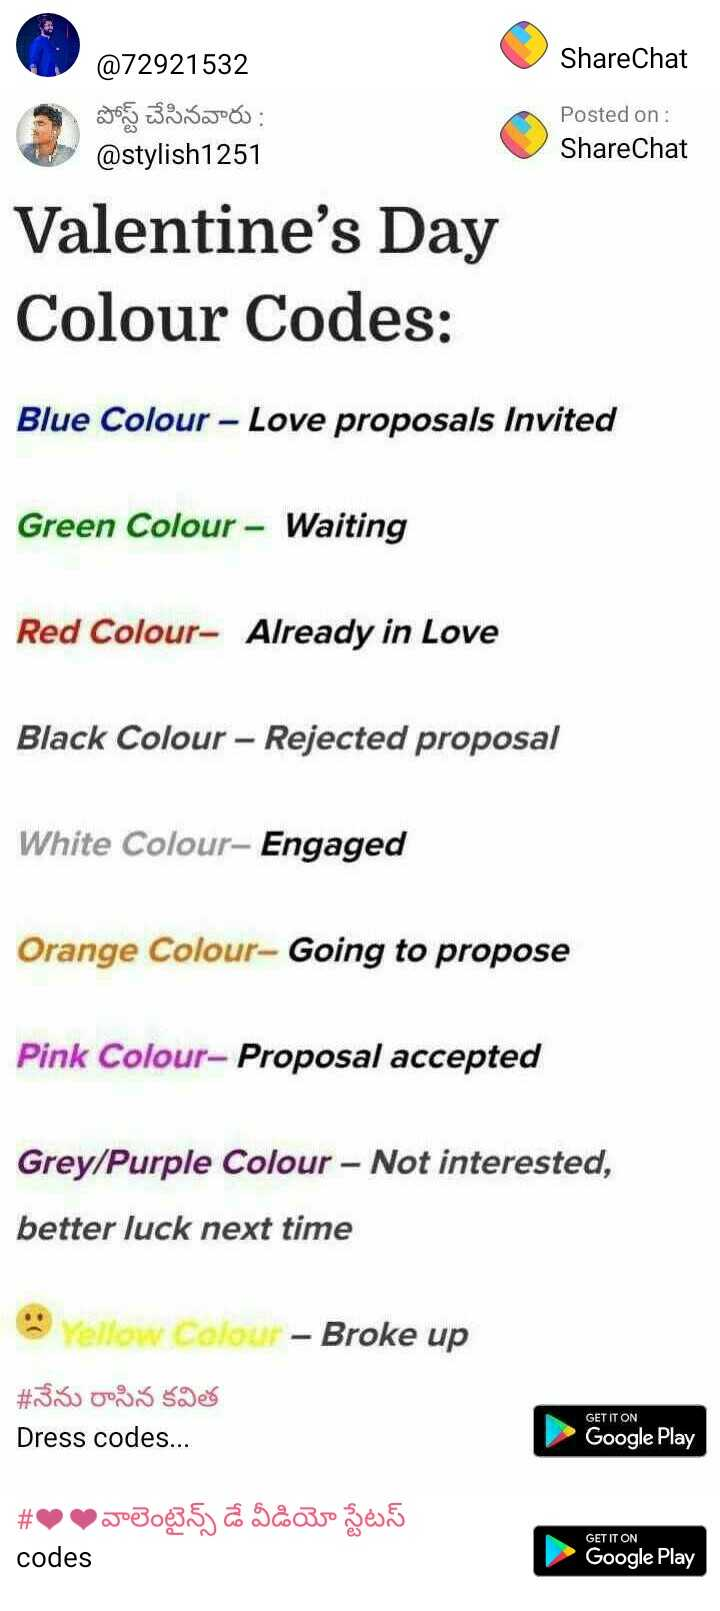 💖💖 lovers...💖💖 - ShareChat @ 72921532 పోస్ట్ చేసినవారు : @ stylish1251 Posted on : ShareChat Valentine ' s Day Colour Codes : Blue Colour - Love proposals Invited Green Colour - Waiting Red Colour - Already in Love Black Colour – Rejected proposal White Colour - Engaged Orange Colour - Going to propose Pink Colour - Proposal accepted Grey / Purple Colour - Not interested , better luck next time Yellow Colour - Broke up # నేను రాసిన కవిత Dress codes . . . GET IT ON Google Play # 00వాలెంటైన్స్ డే వీడియో స్టేటస్ GET IT ON codes Google Play - ShareChat